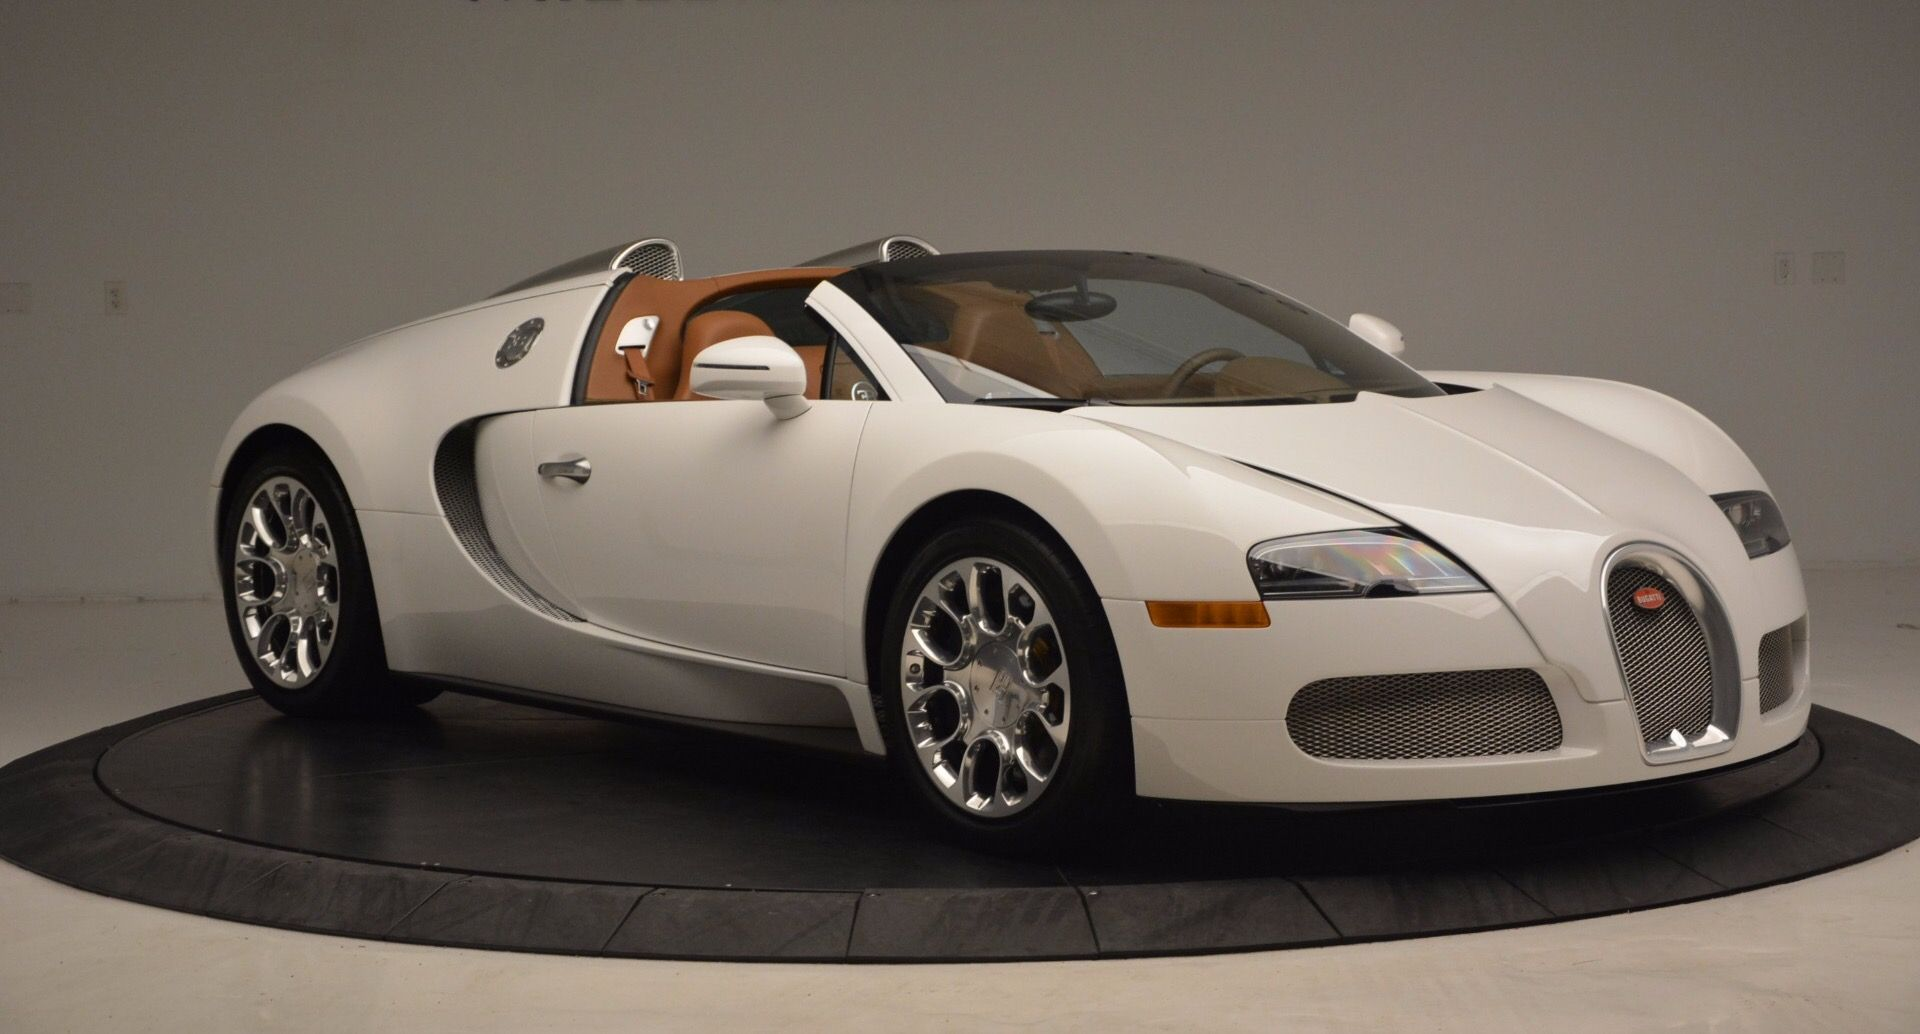 hight resolution of 2011 bugatti veyron 16 4 grand sport for sale at miller motorcars rh pinterest com bugatti veyron concept bugatti veyron outline